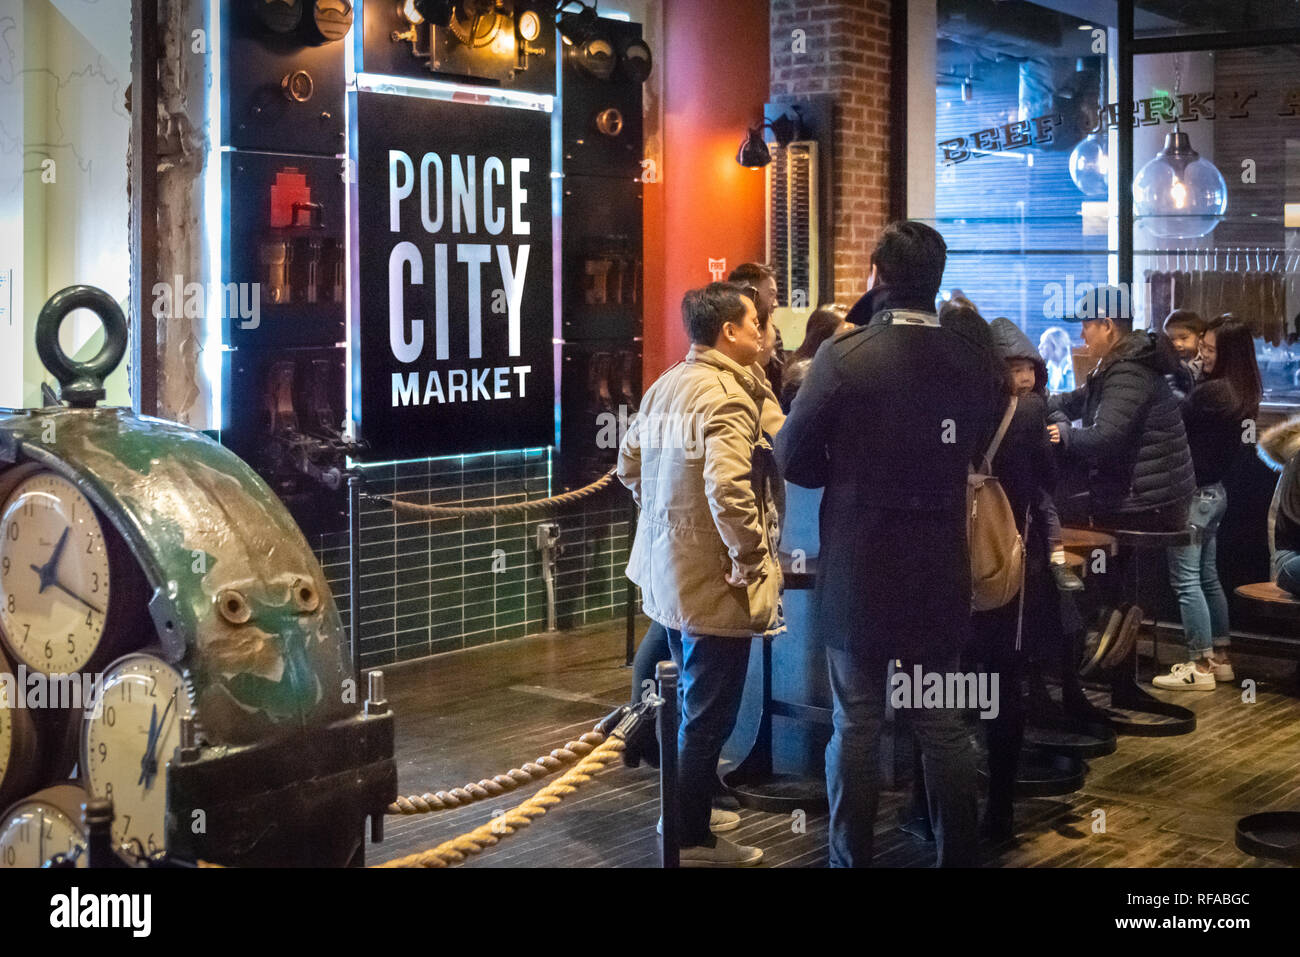 People gathering in the Central Food Court at Ponce City Market in Atlanta, Georgia. (USA) - Stock Image